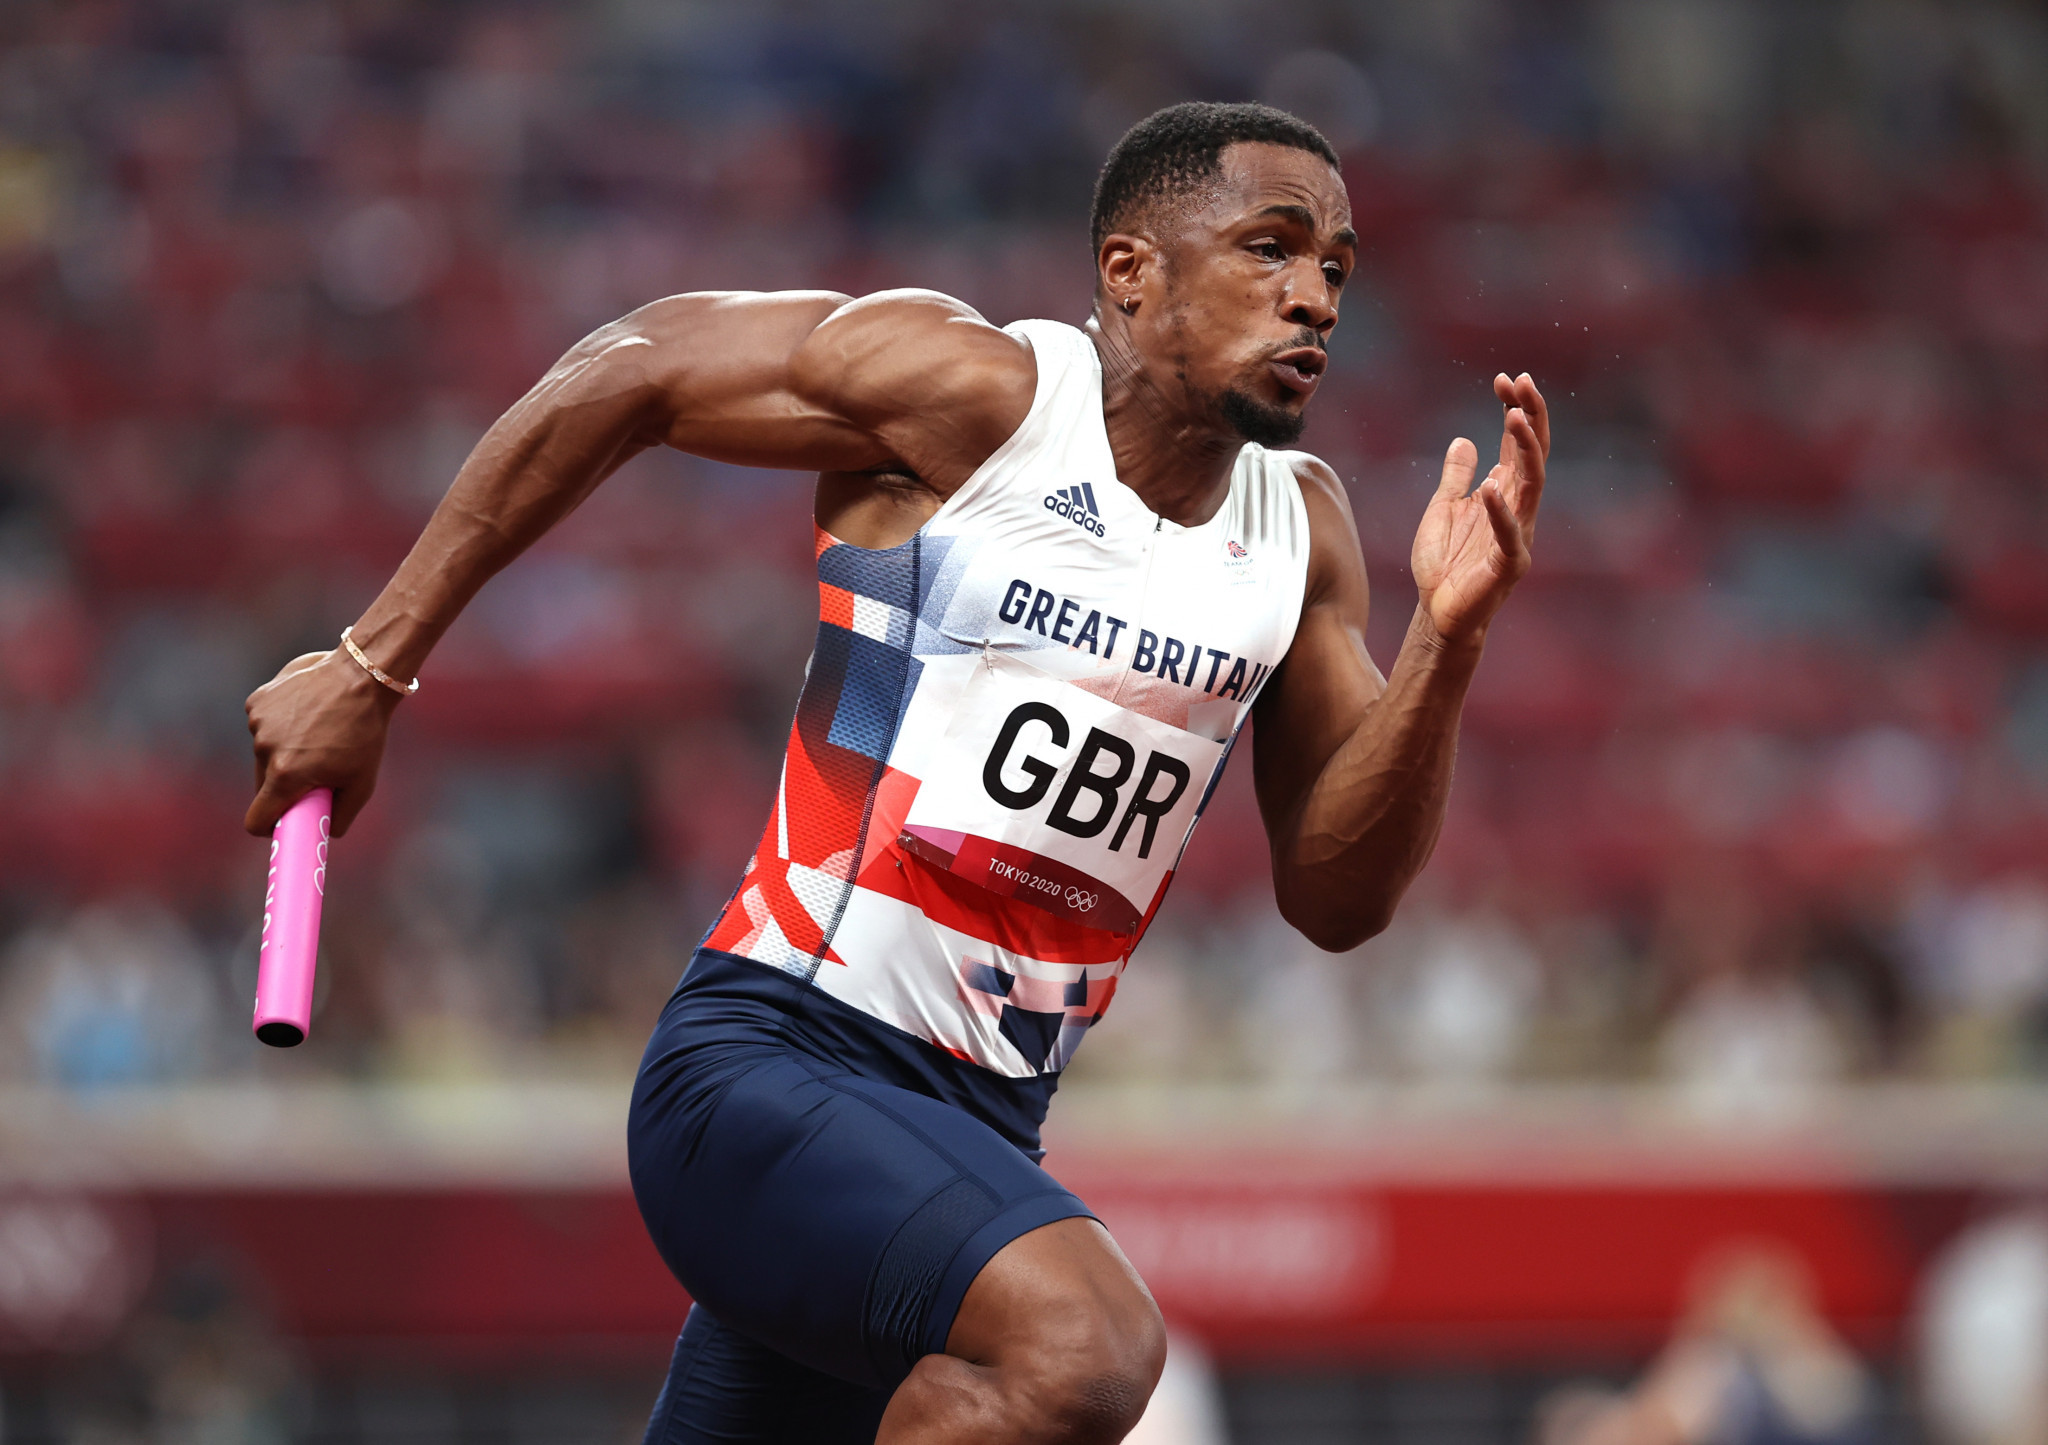 CJ Ujah faces losing his Olympic silver medal after testing positive for banned drugs at Tokyo 2020 after being caught by the ITA ©Getty Images